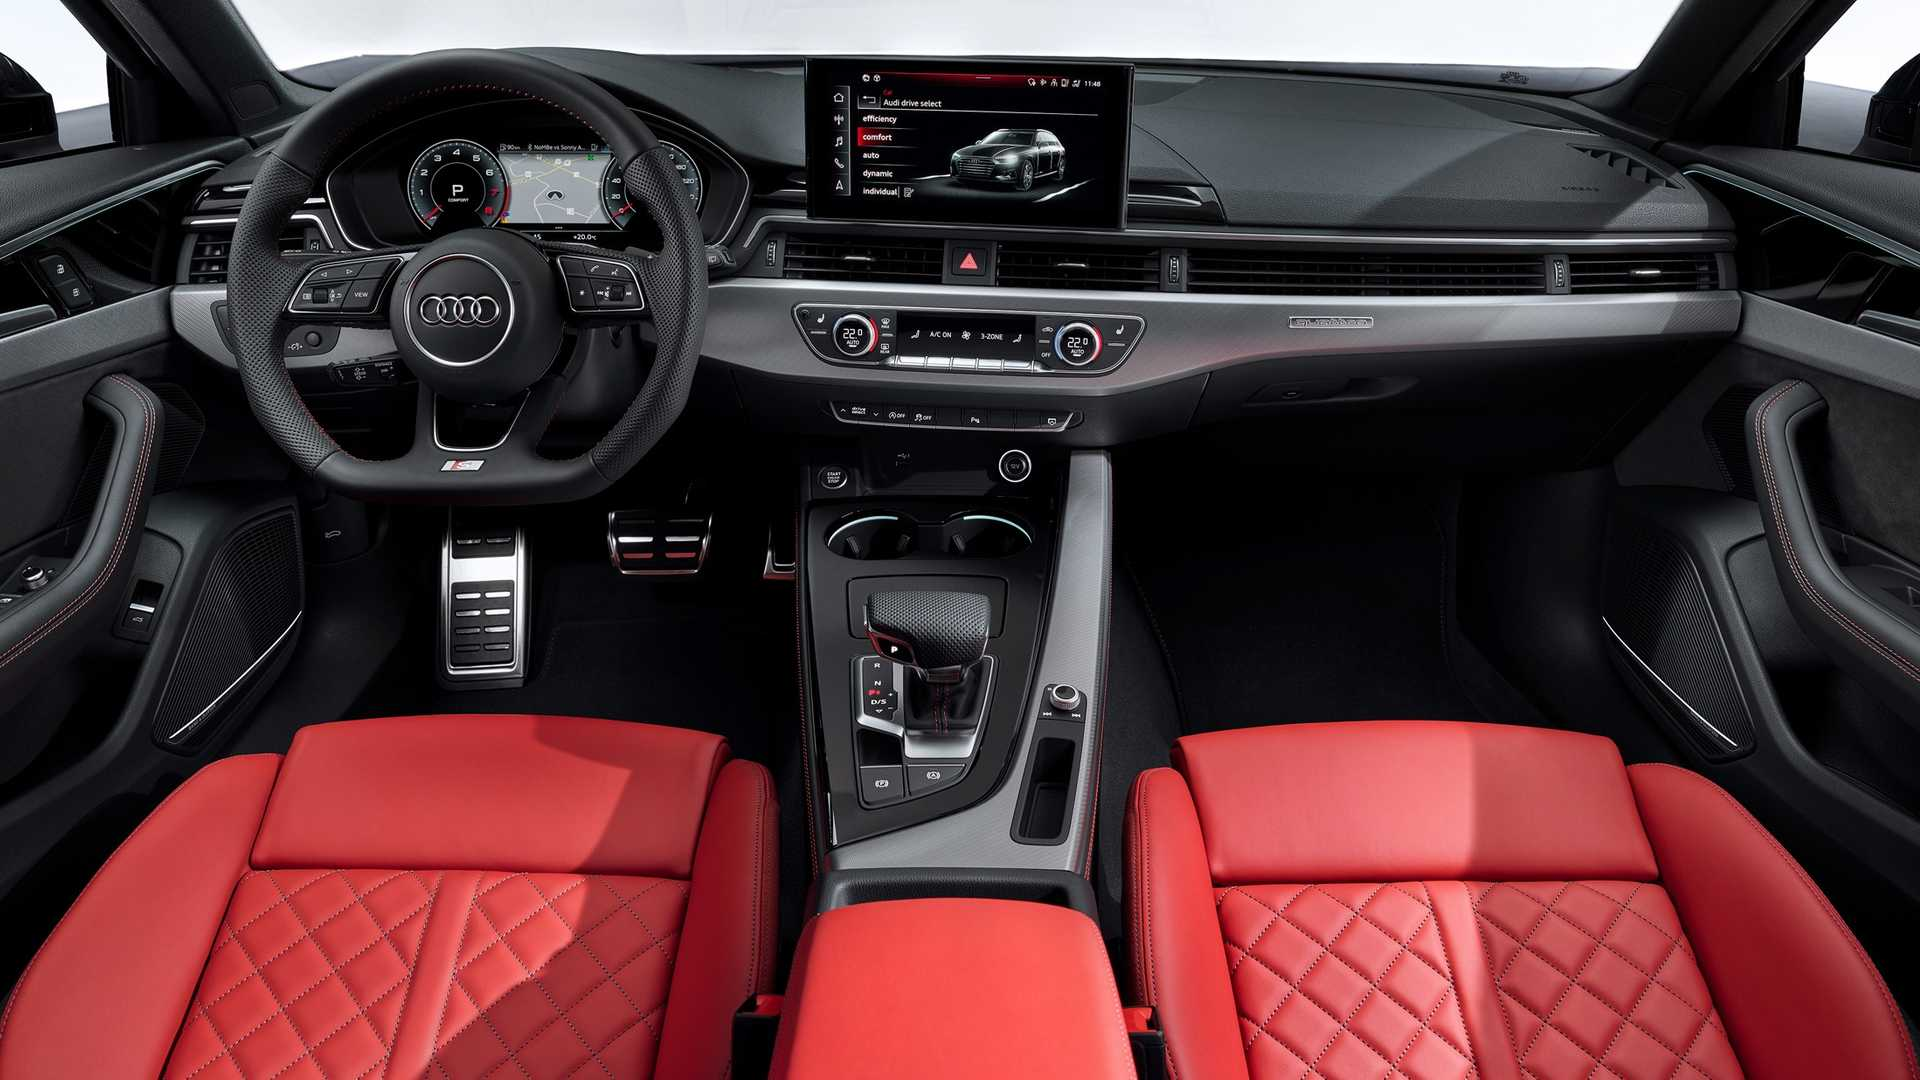 2020 Audi A4 Avant Interior Cockpit Wallpapers (6)